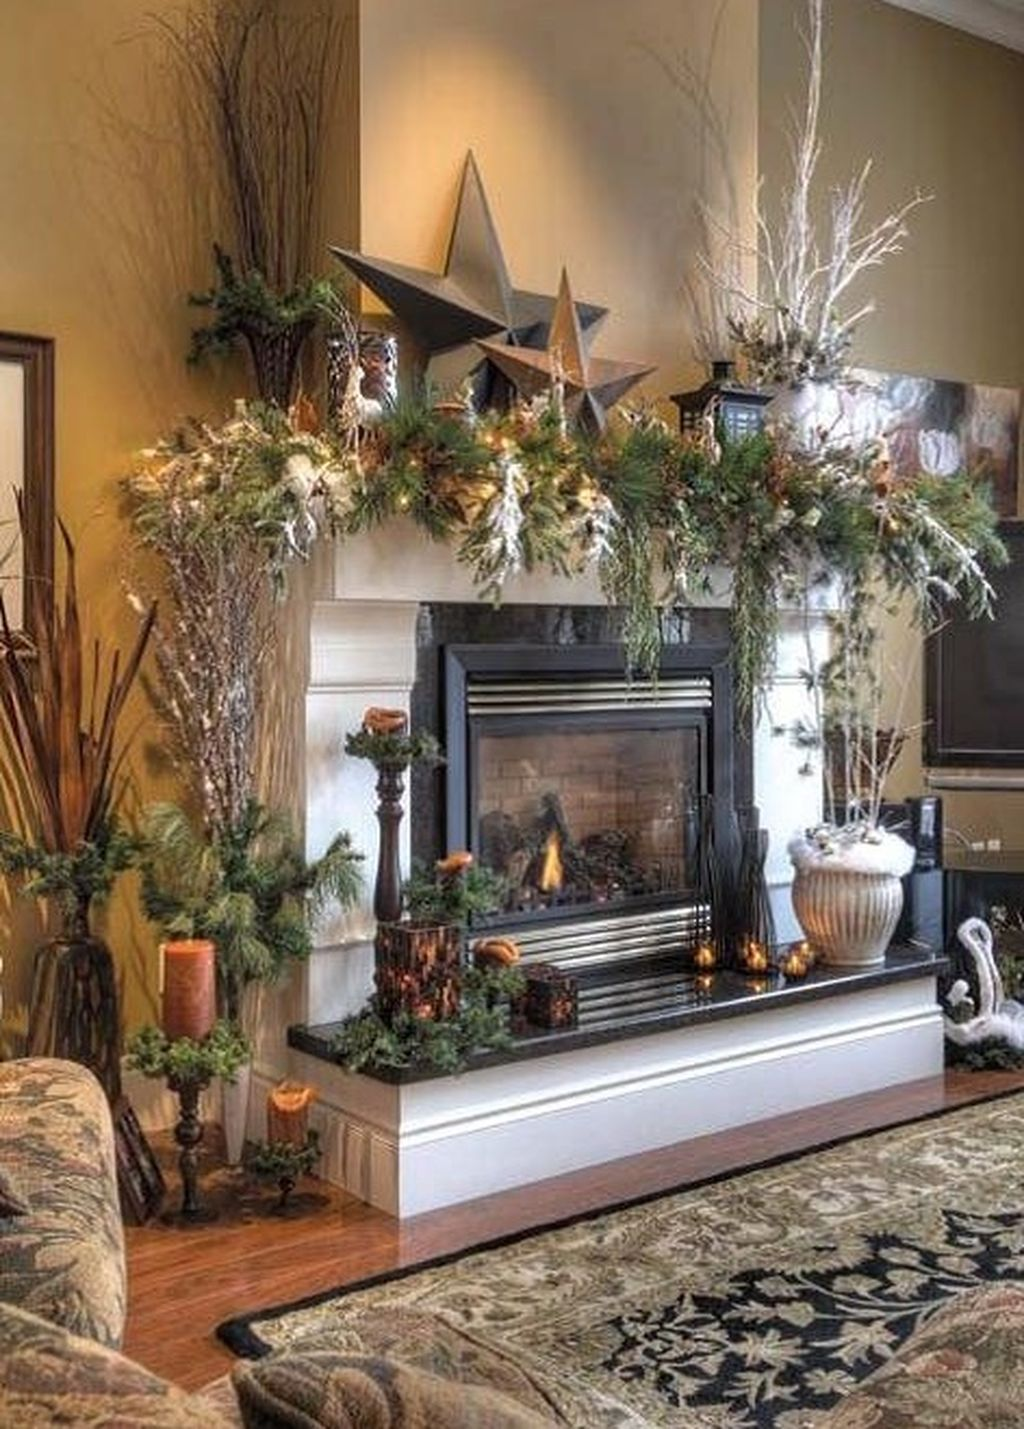 99 Inspiring Rustic Christmas Fireplace Ideas To Makes Your Home